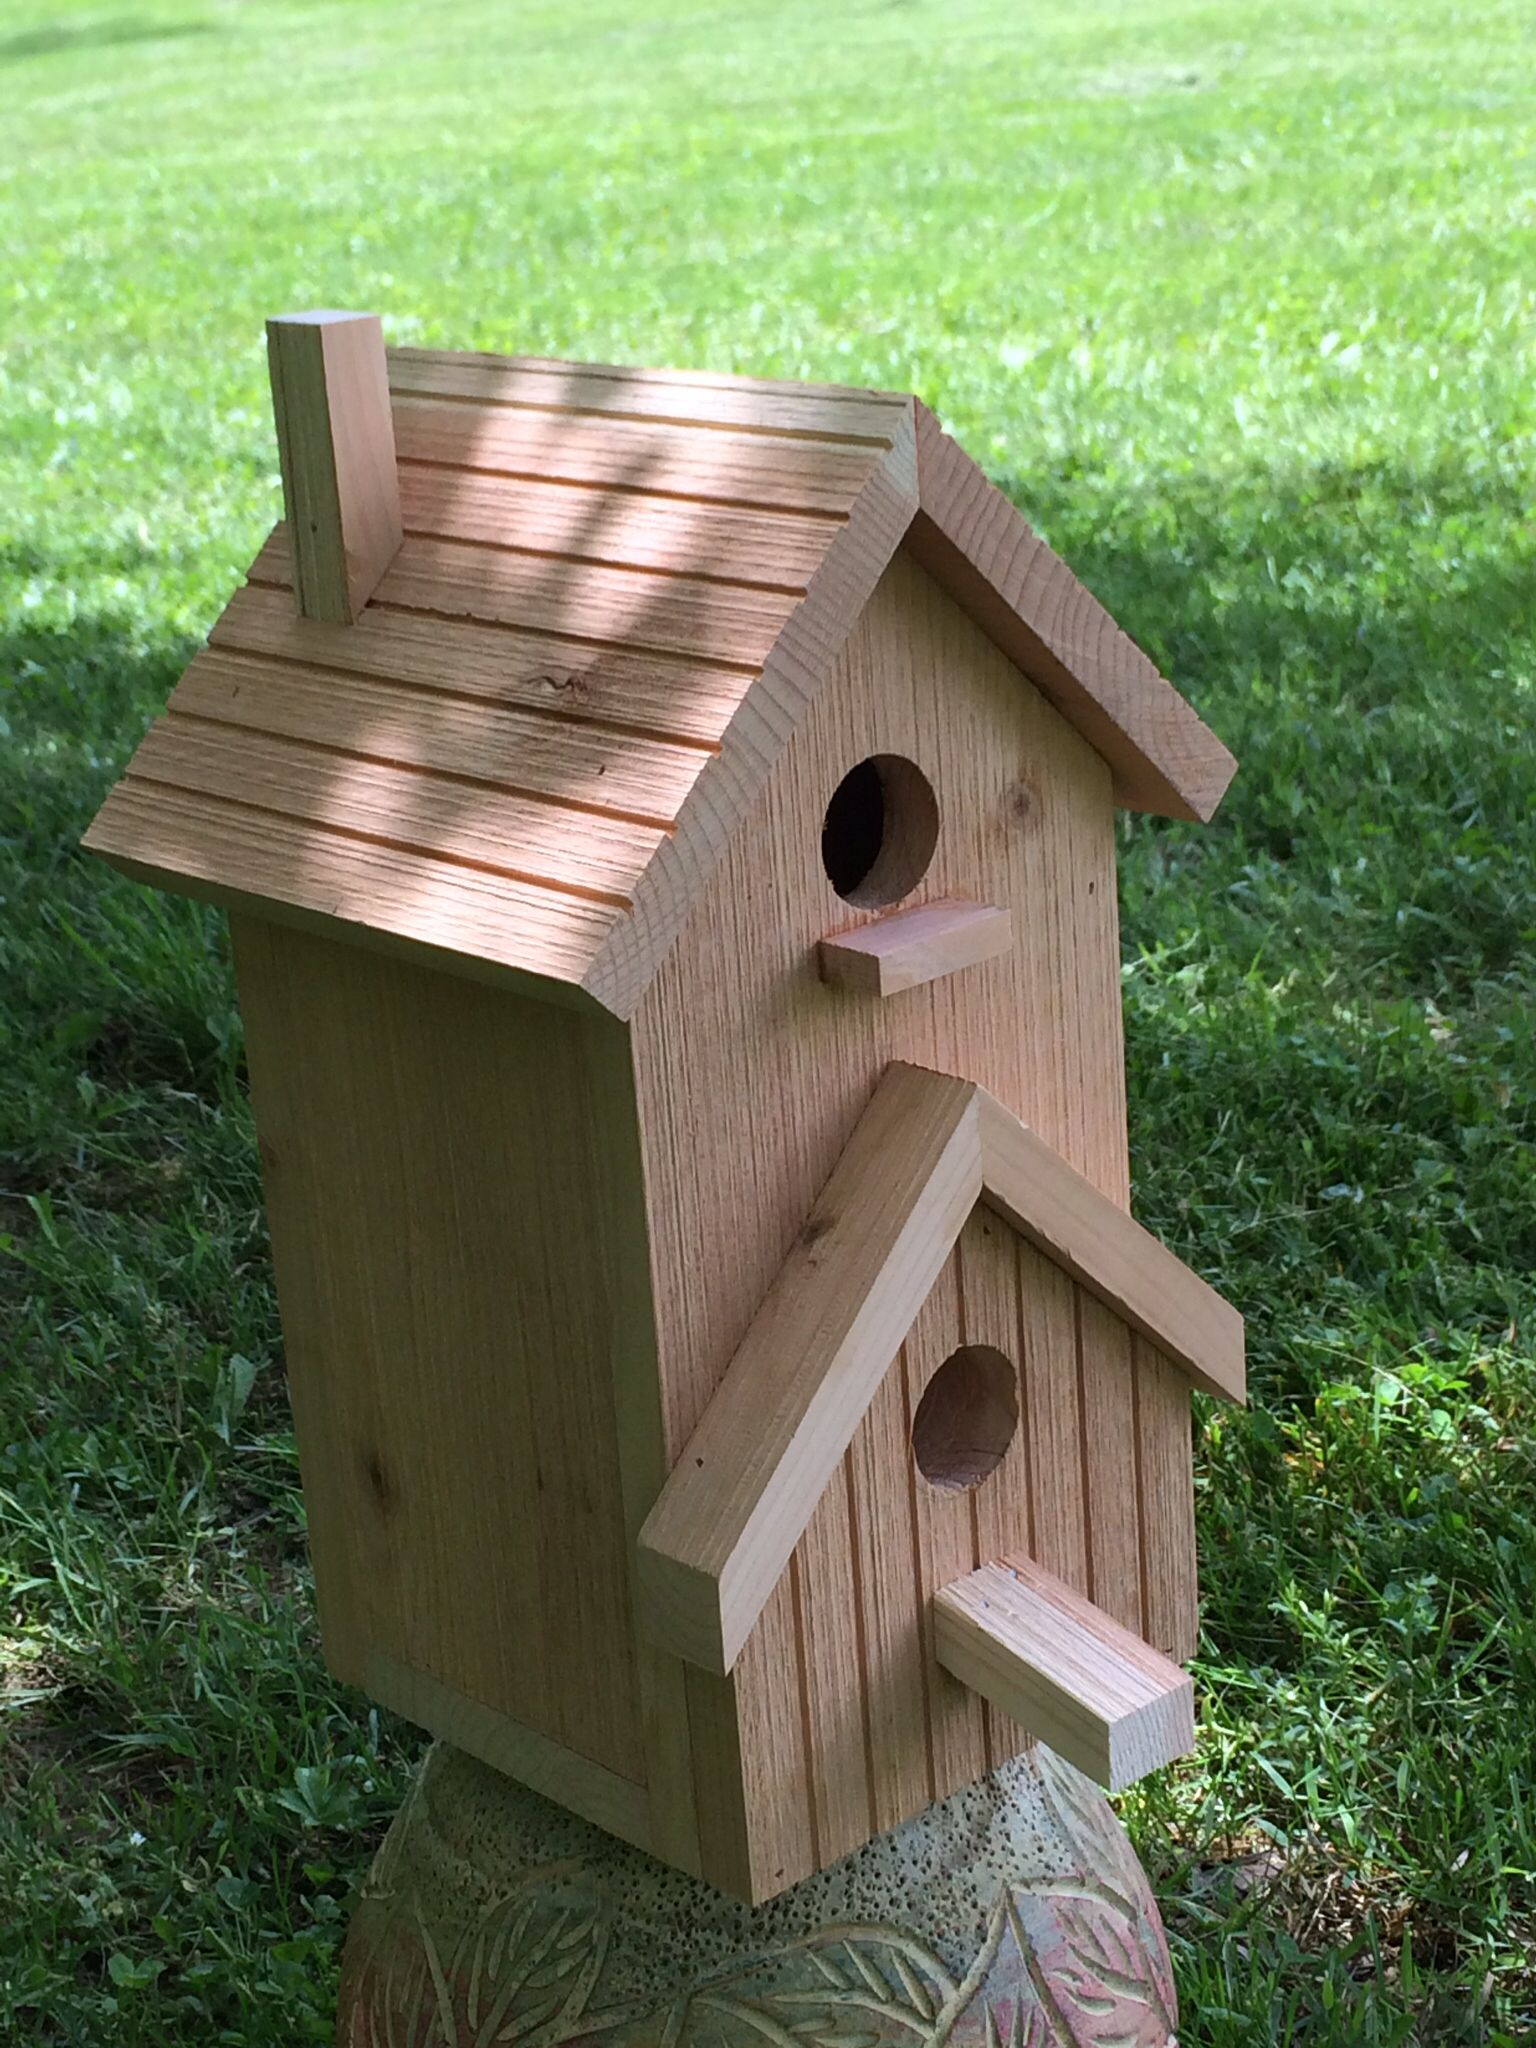 country birdhouse   skwoodworks   Bird houses, Decorative ... on country benches plans, country gardens plans, purple martin house plans, country furniture plans, country landscaping plans, country kitchen plans, country home decor plans, country cottage bird house,